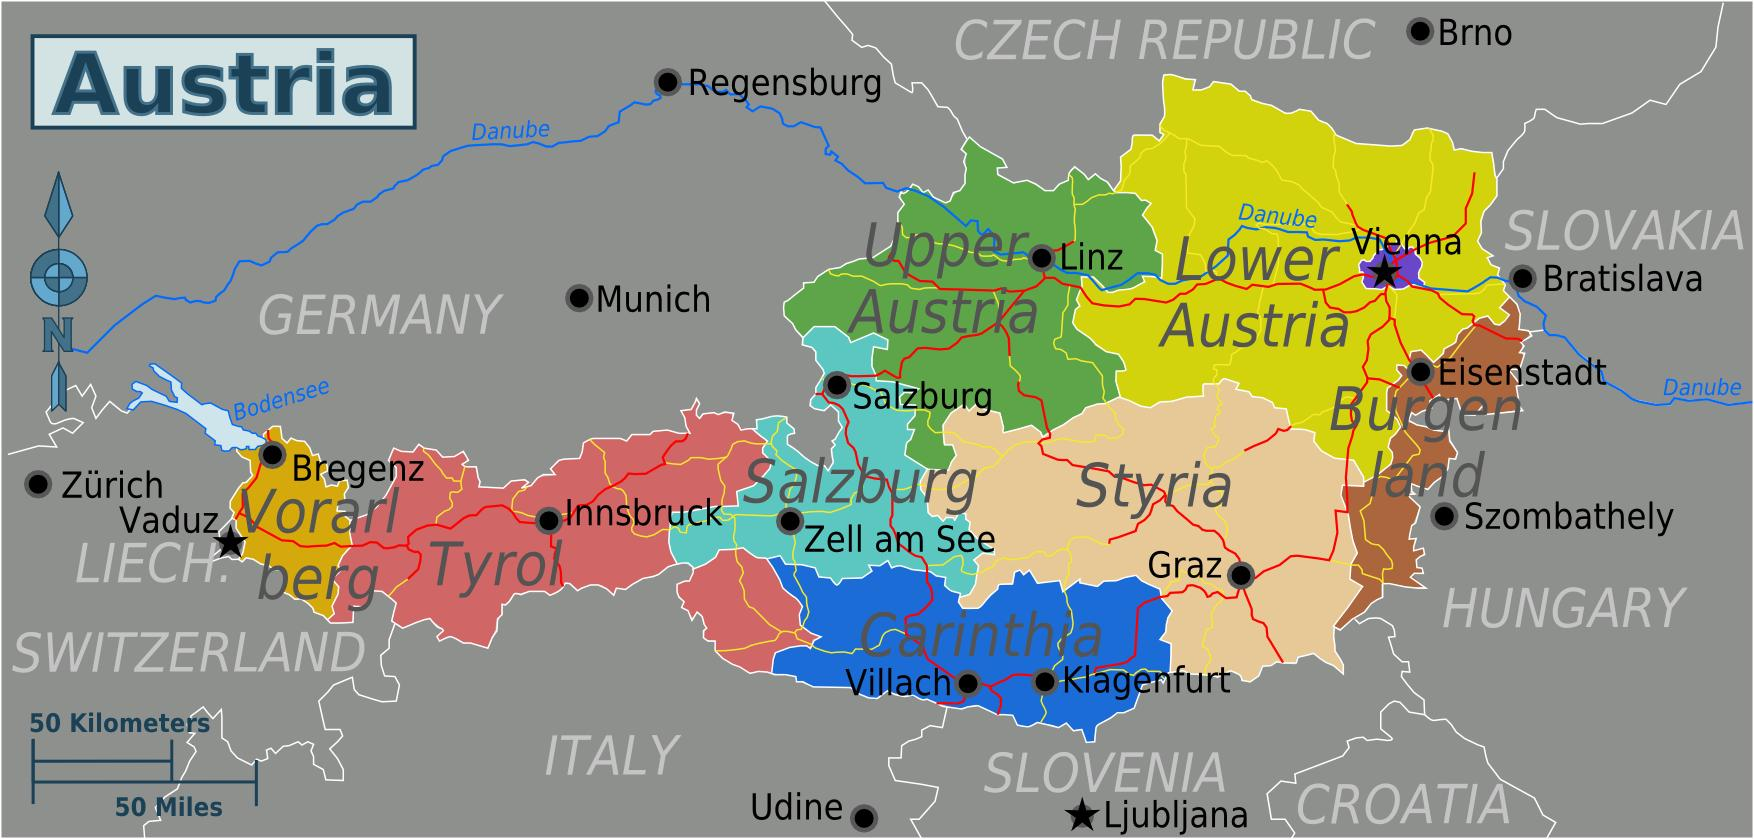 Map Of Zell Germany.Austrijos Narių Zemėlapis Zemėlapis Austrijos Valstybių Vakarų